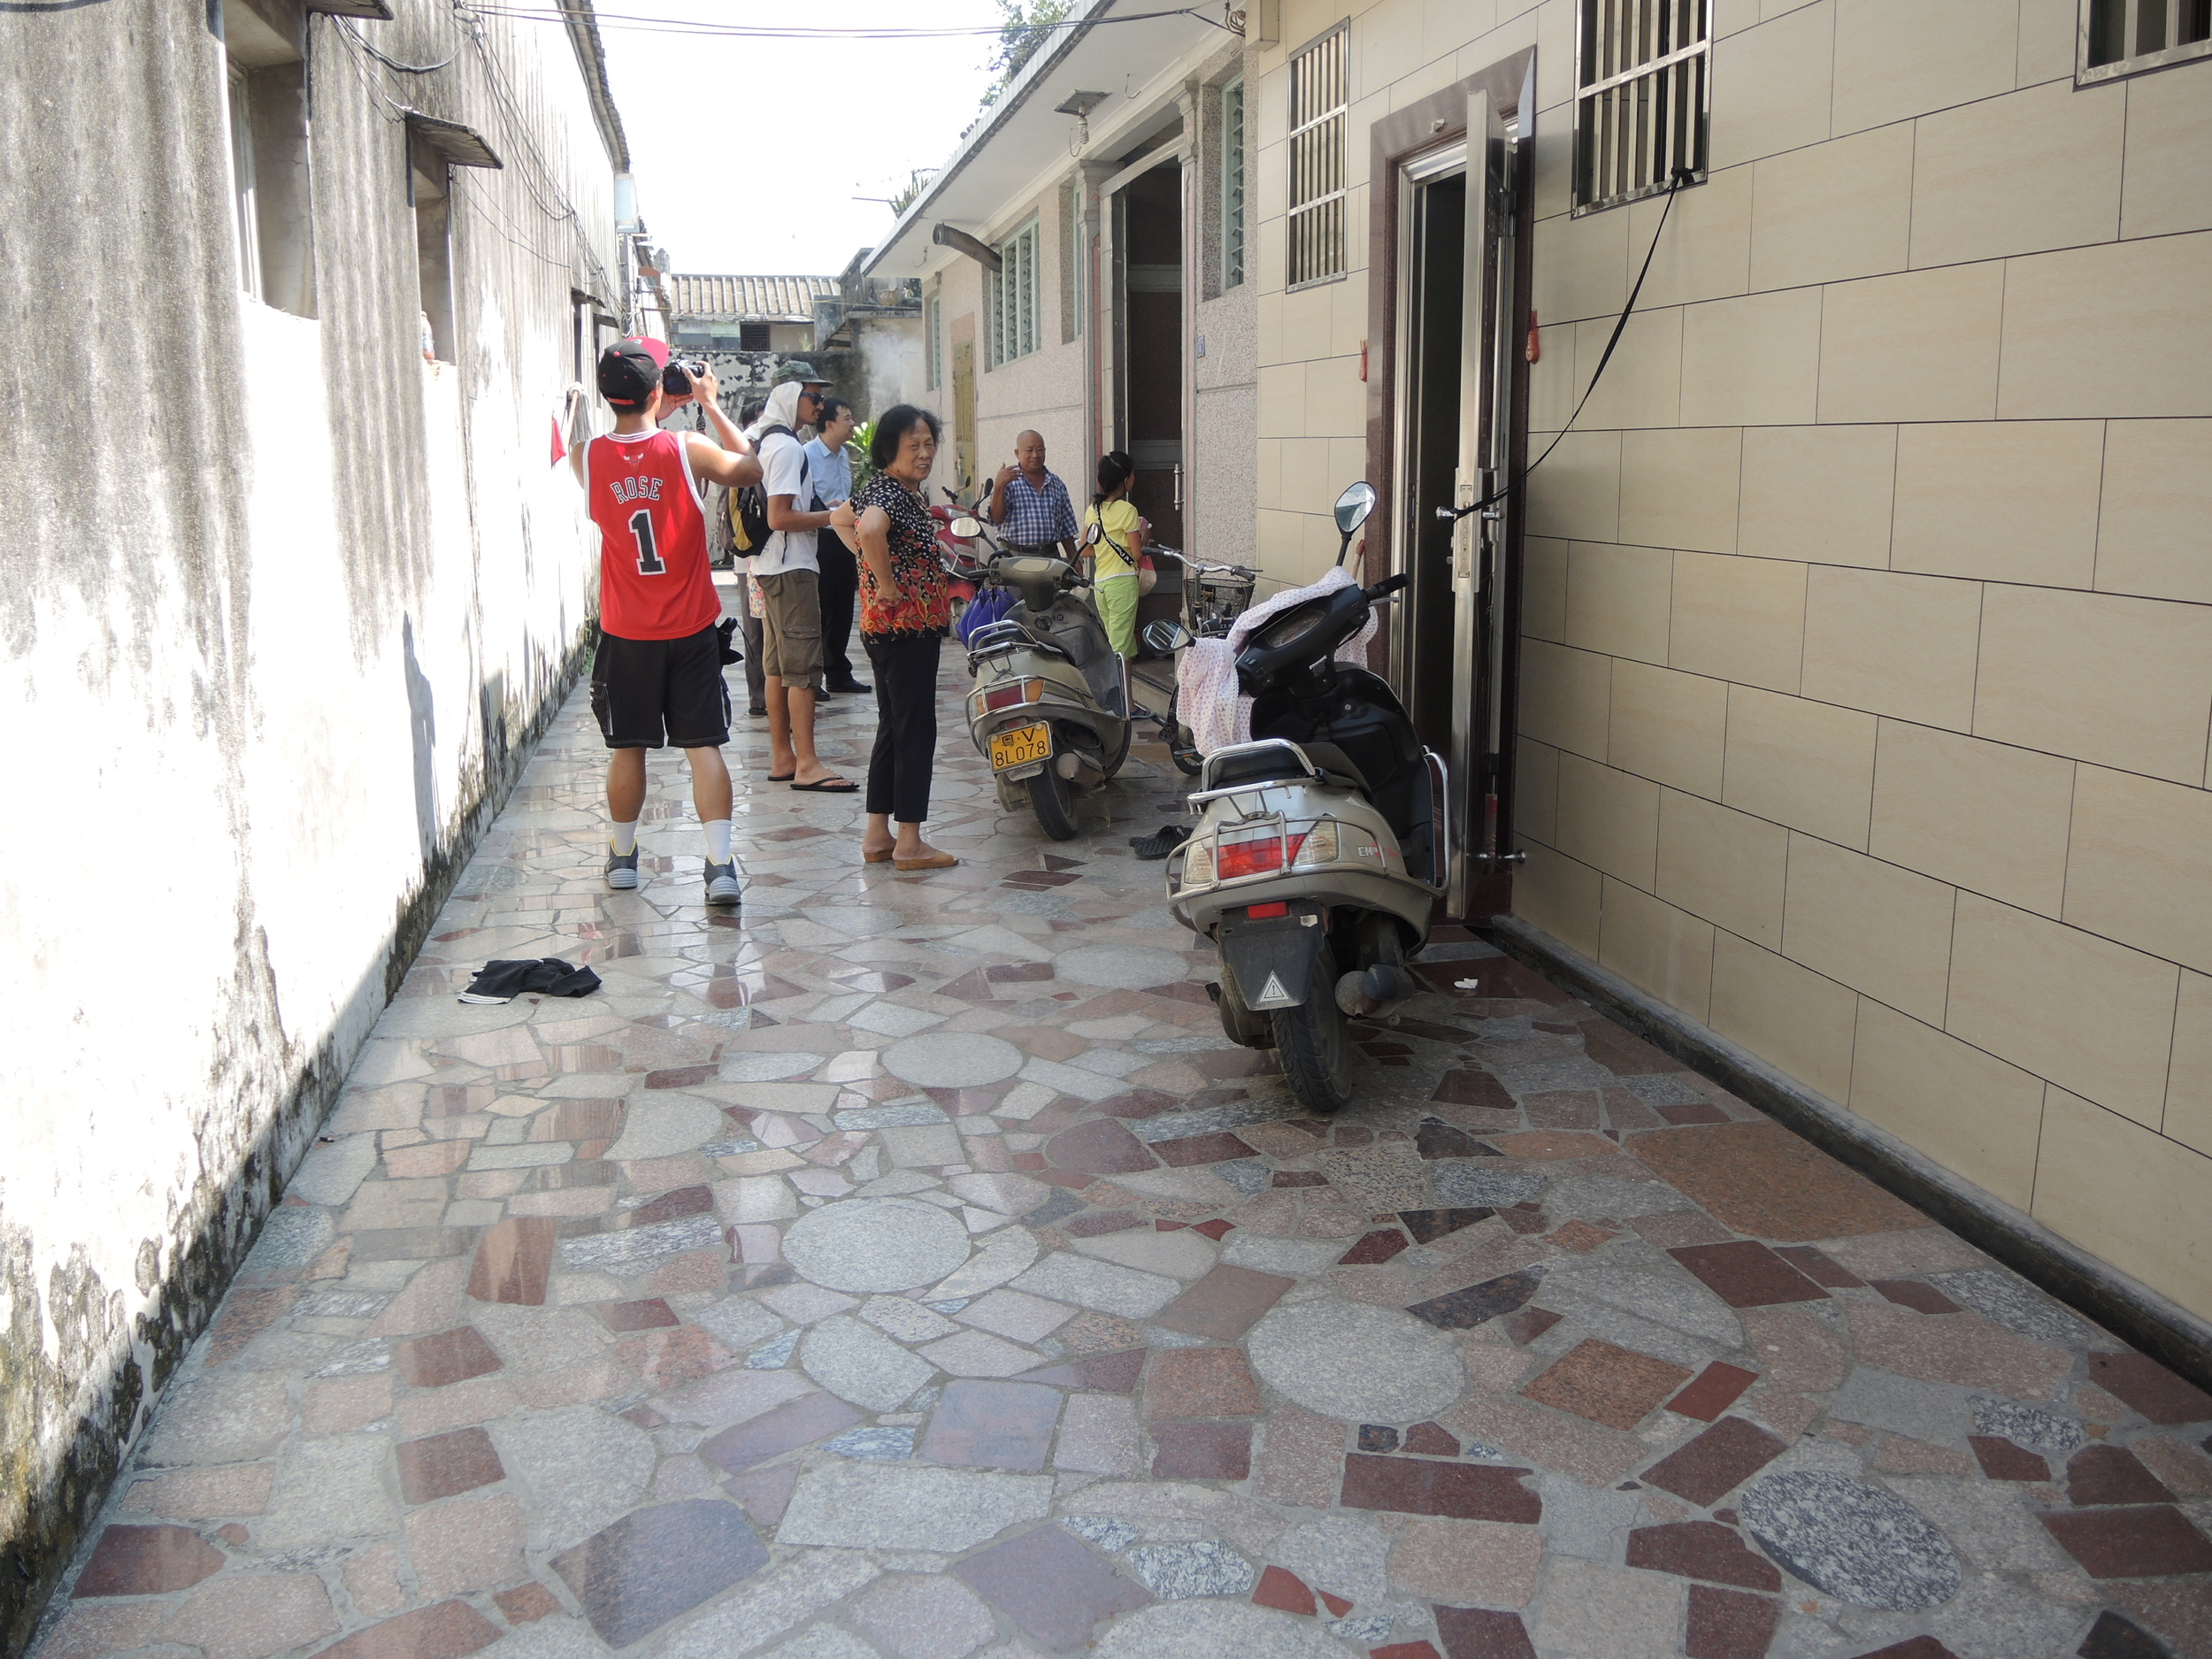 My three granduncles live next door to each other. They paved their pathway/alley with marble stone.